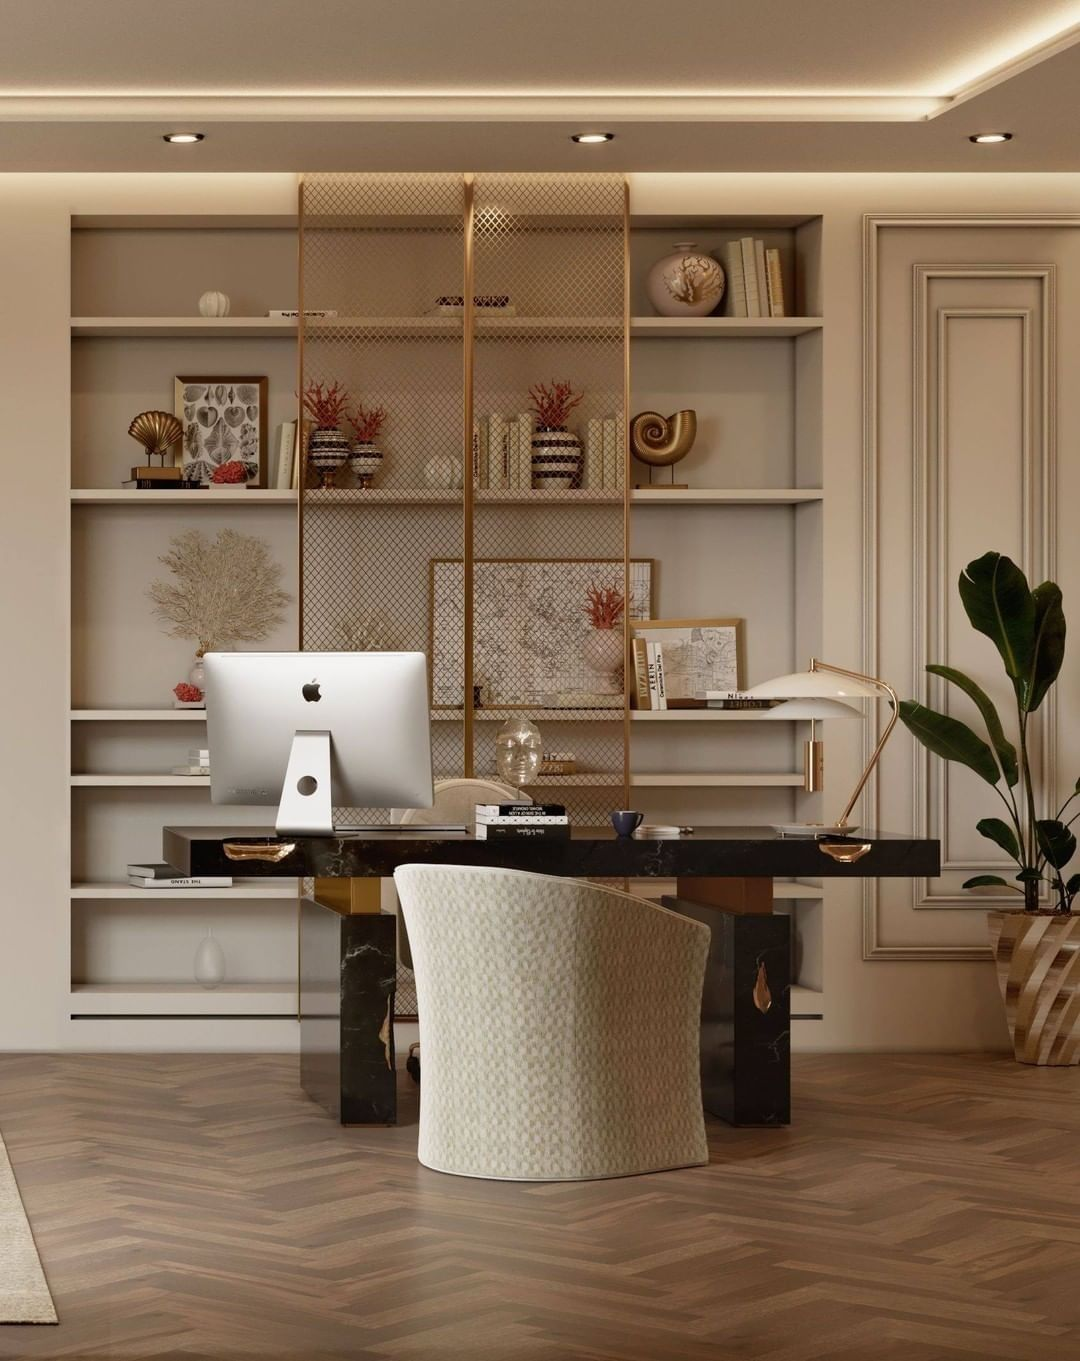 A MID-CENTURY MODERN STYLE OFFICE IN NEUTRAL TONES